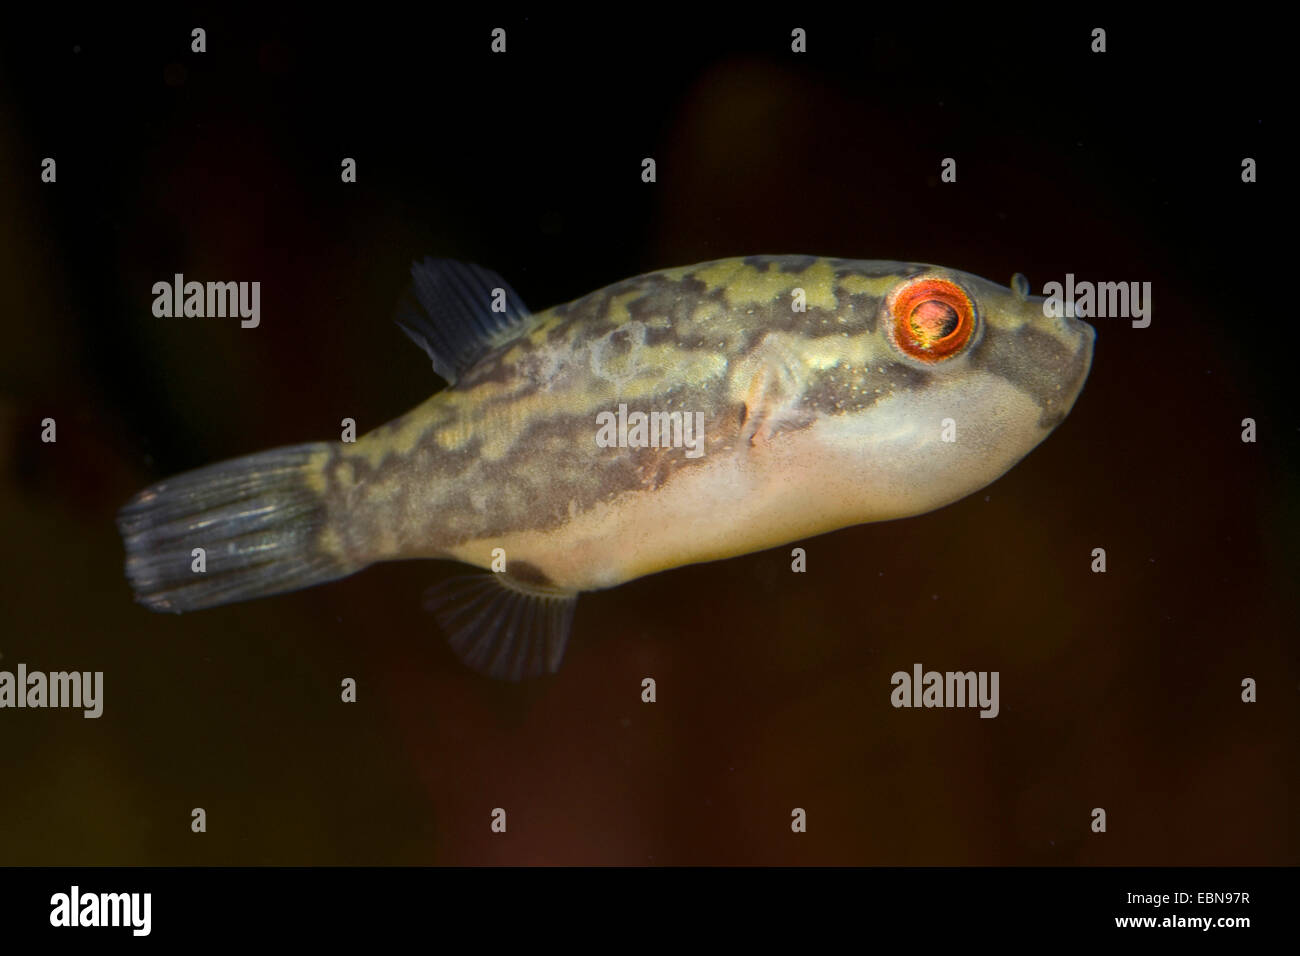 Red tailed Red eye puffer, Crested Puffer (Carinotetraodon irrubesco), swimming - Stock Image